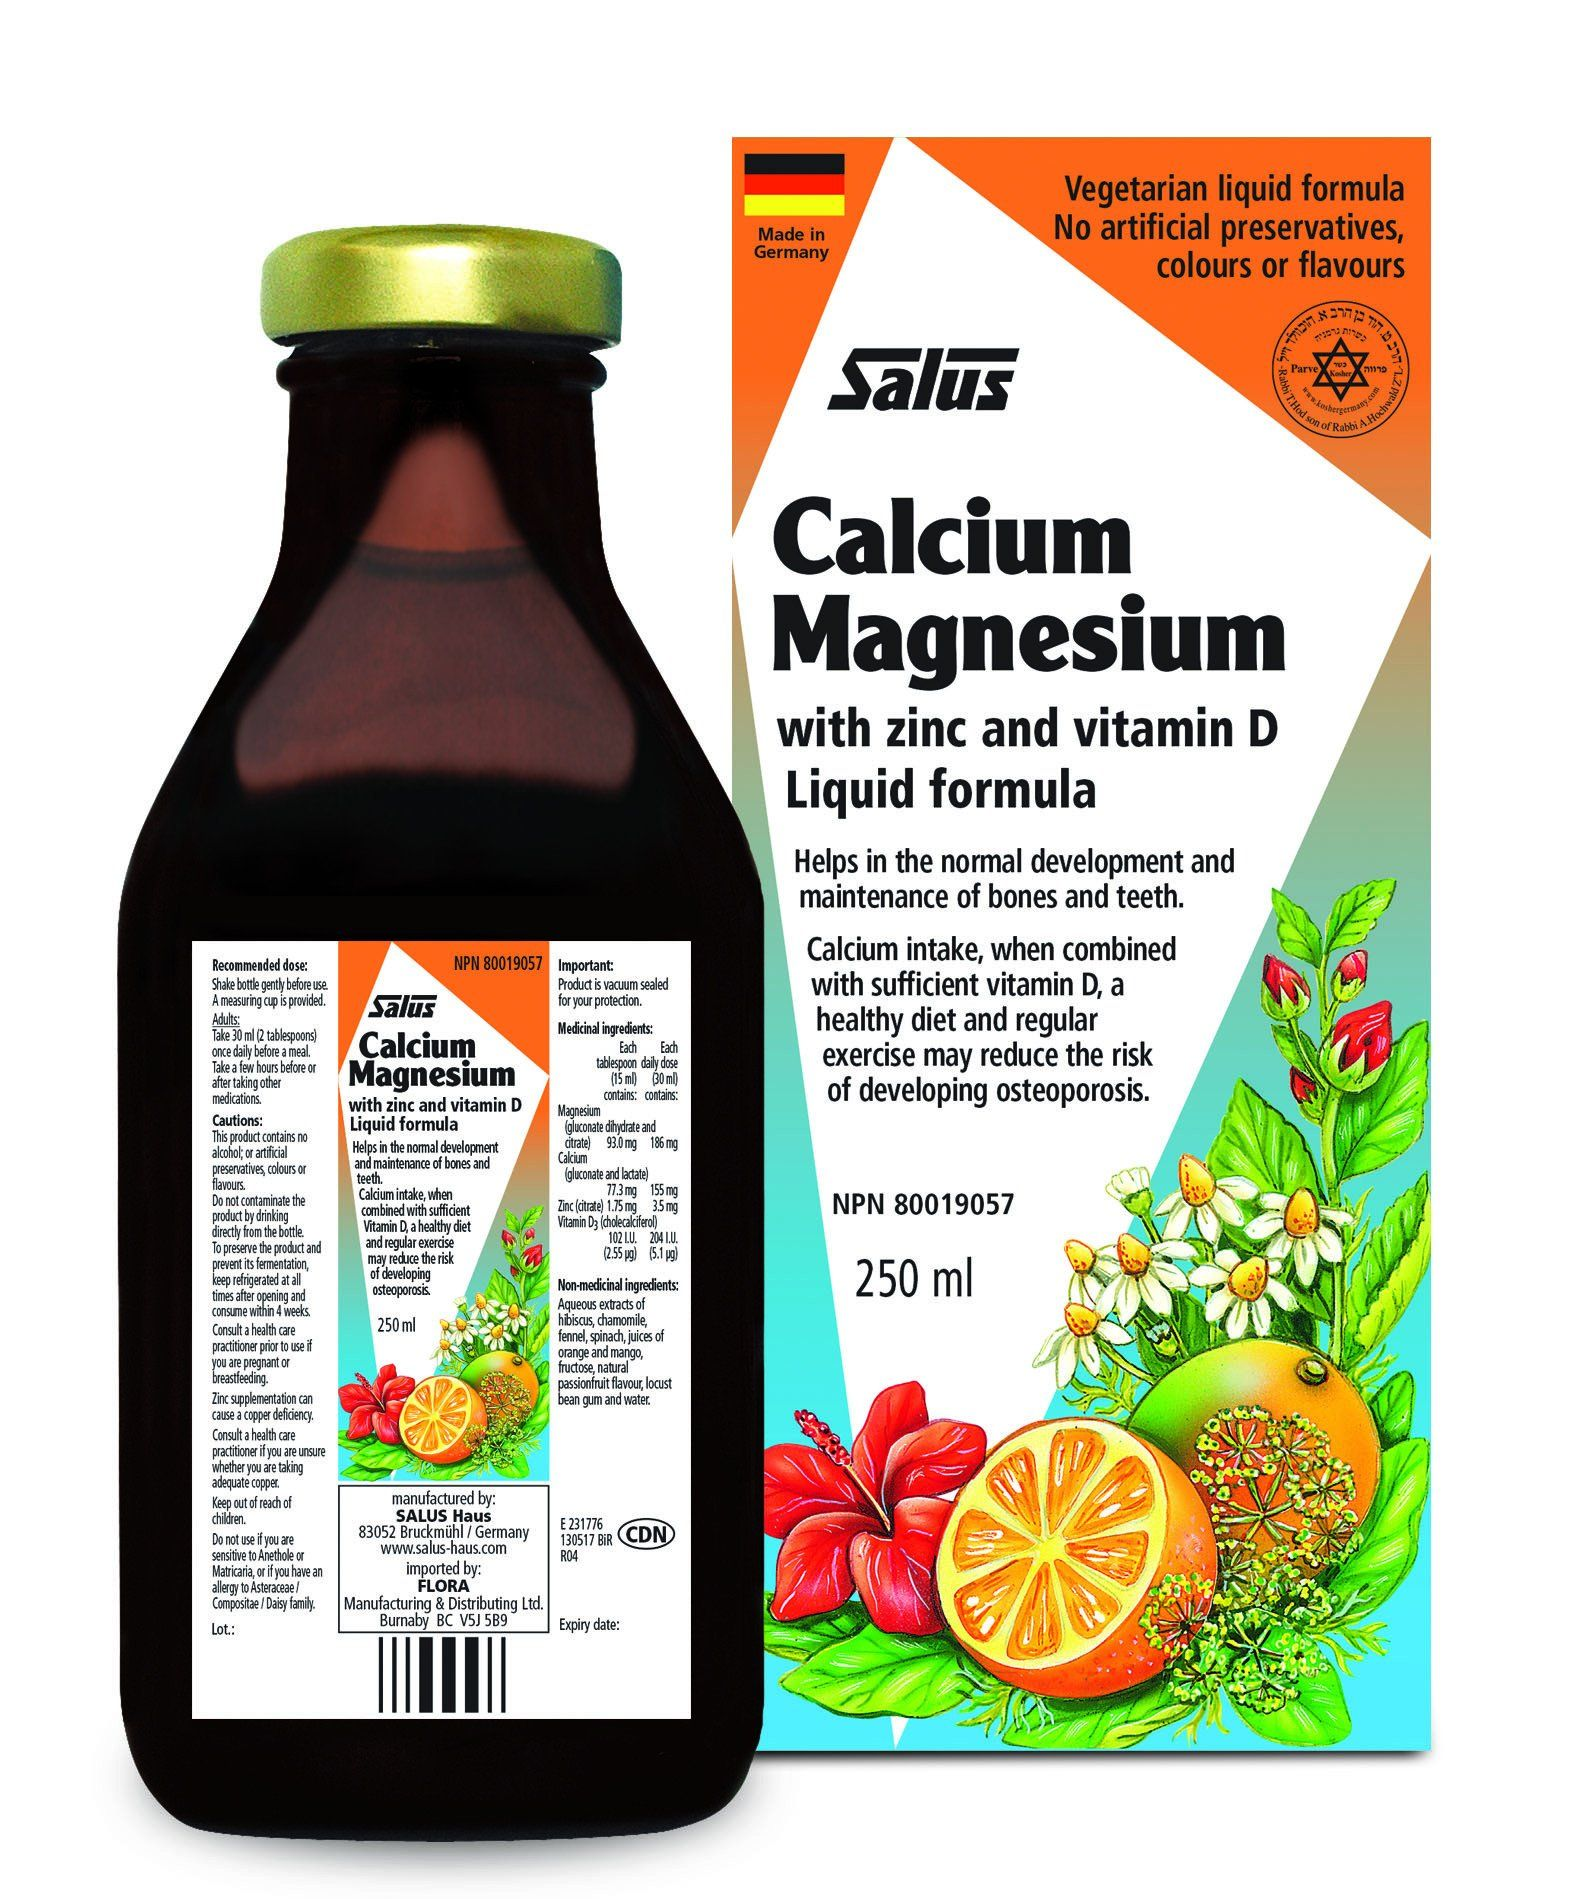 Supplements & Vitamins - Salus - Calcium Magnesium, 250ml